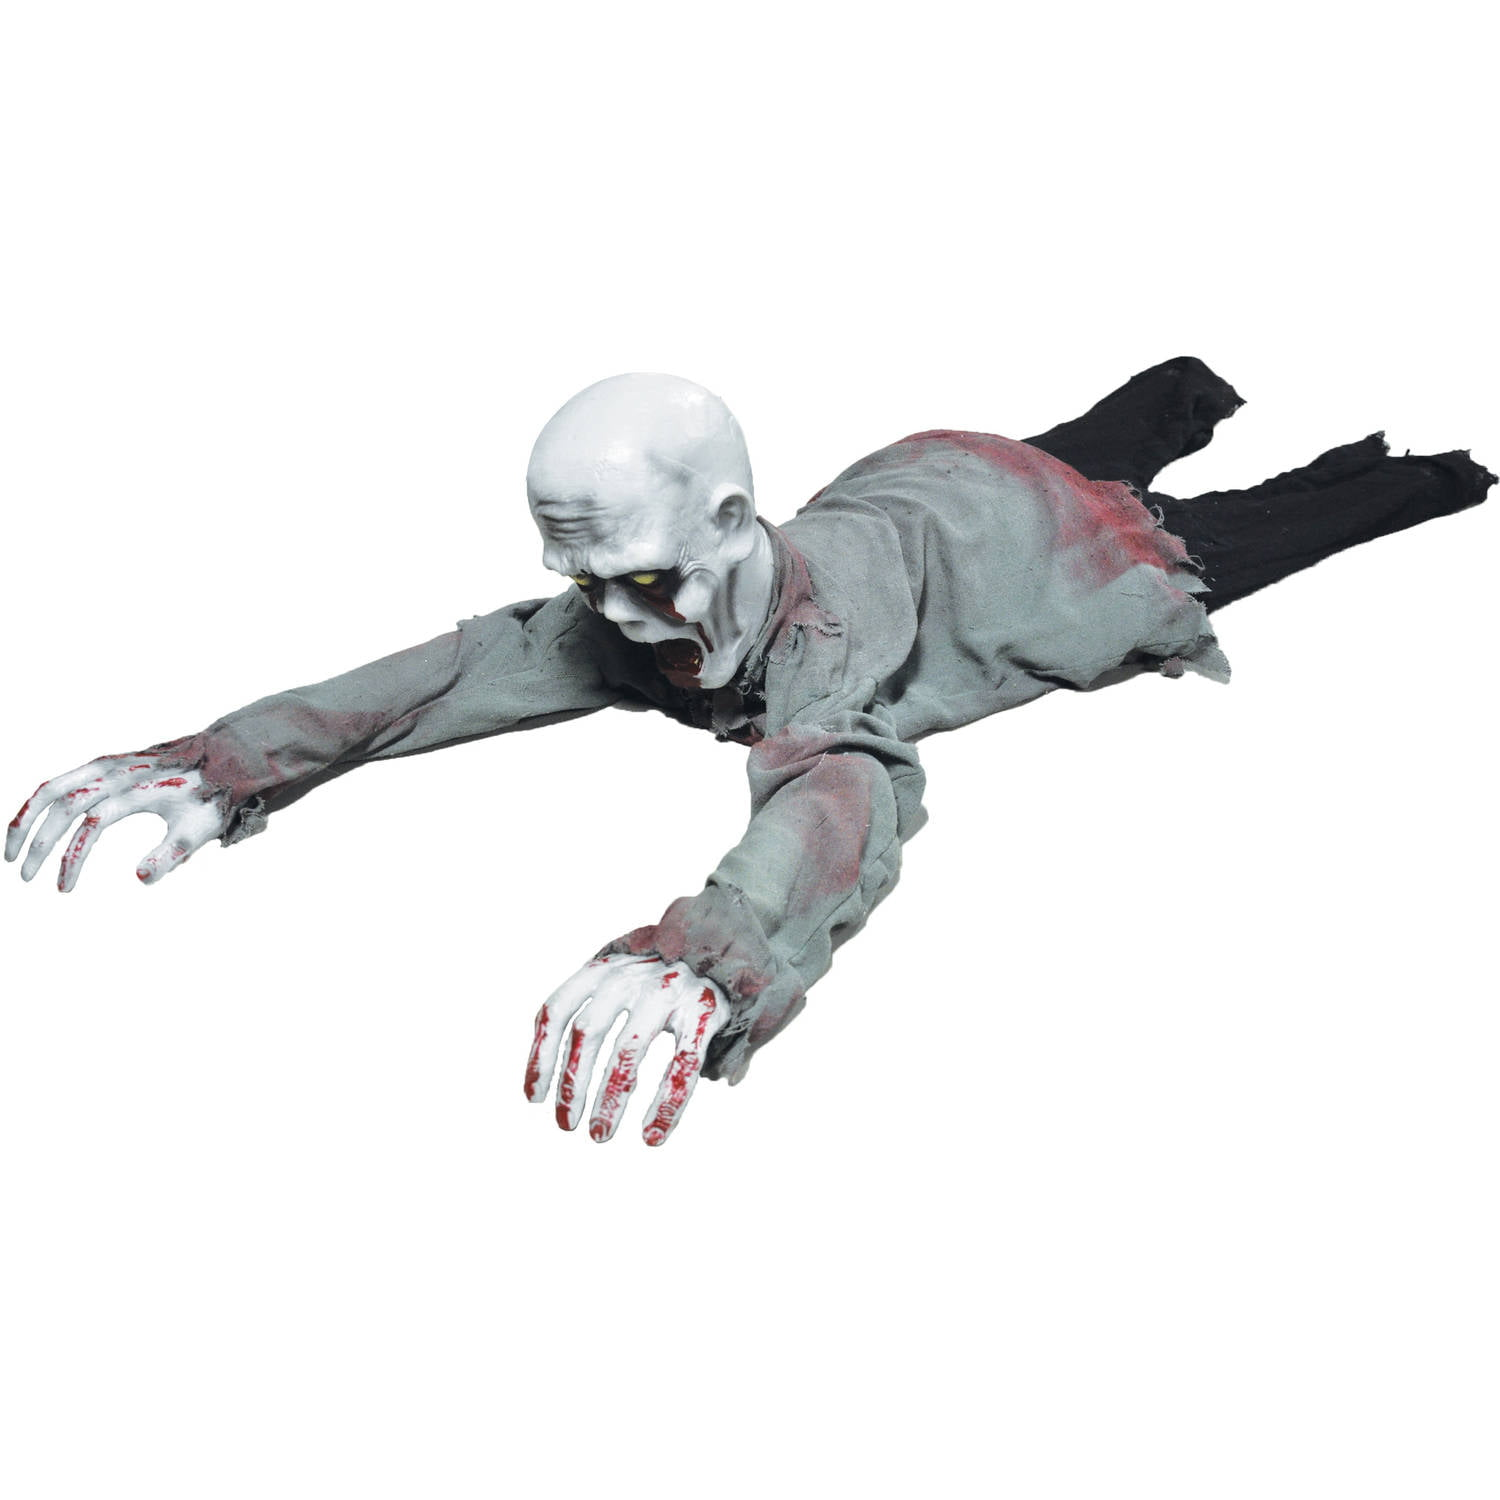 crawling zombie animated halloween decoration walmartcom - Animated Halloween Decorations